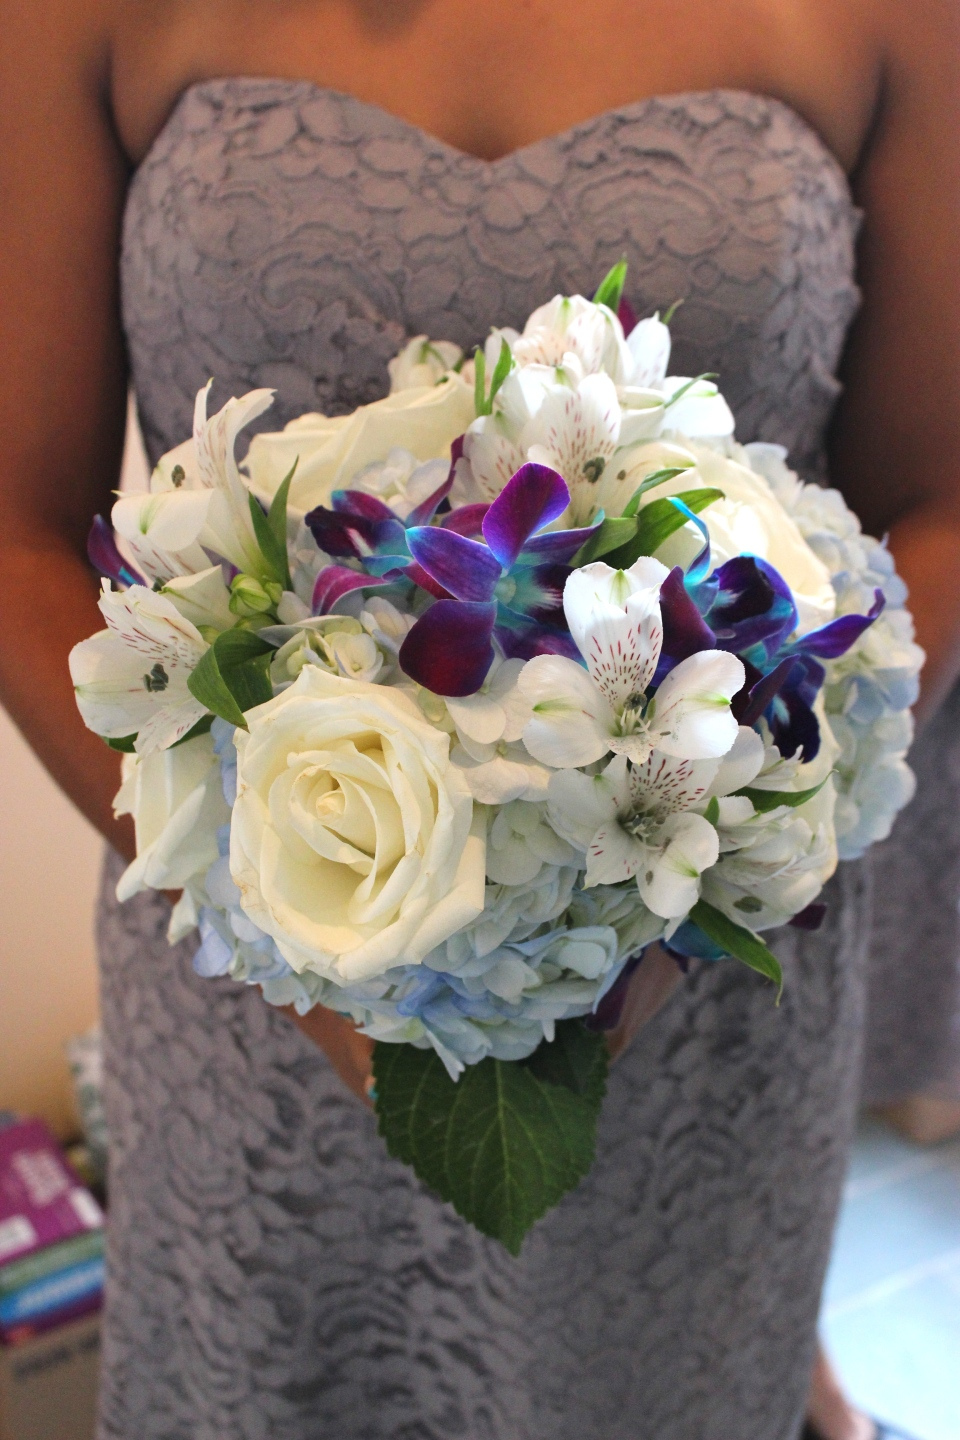 Bouquet of orchids, roses, alstromeria and hydrangea